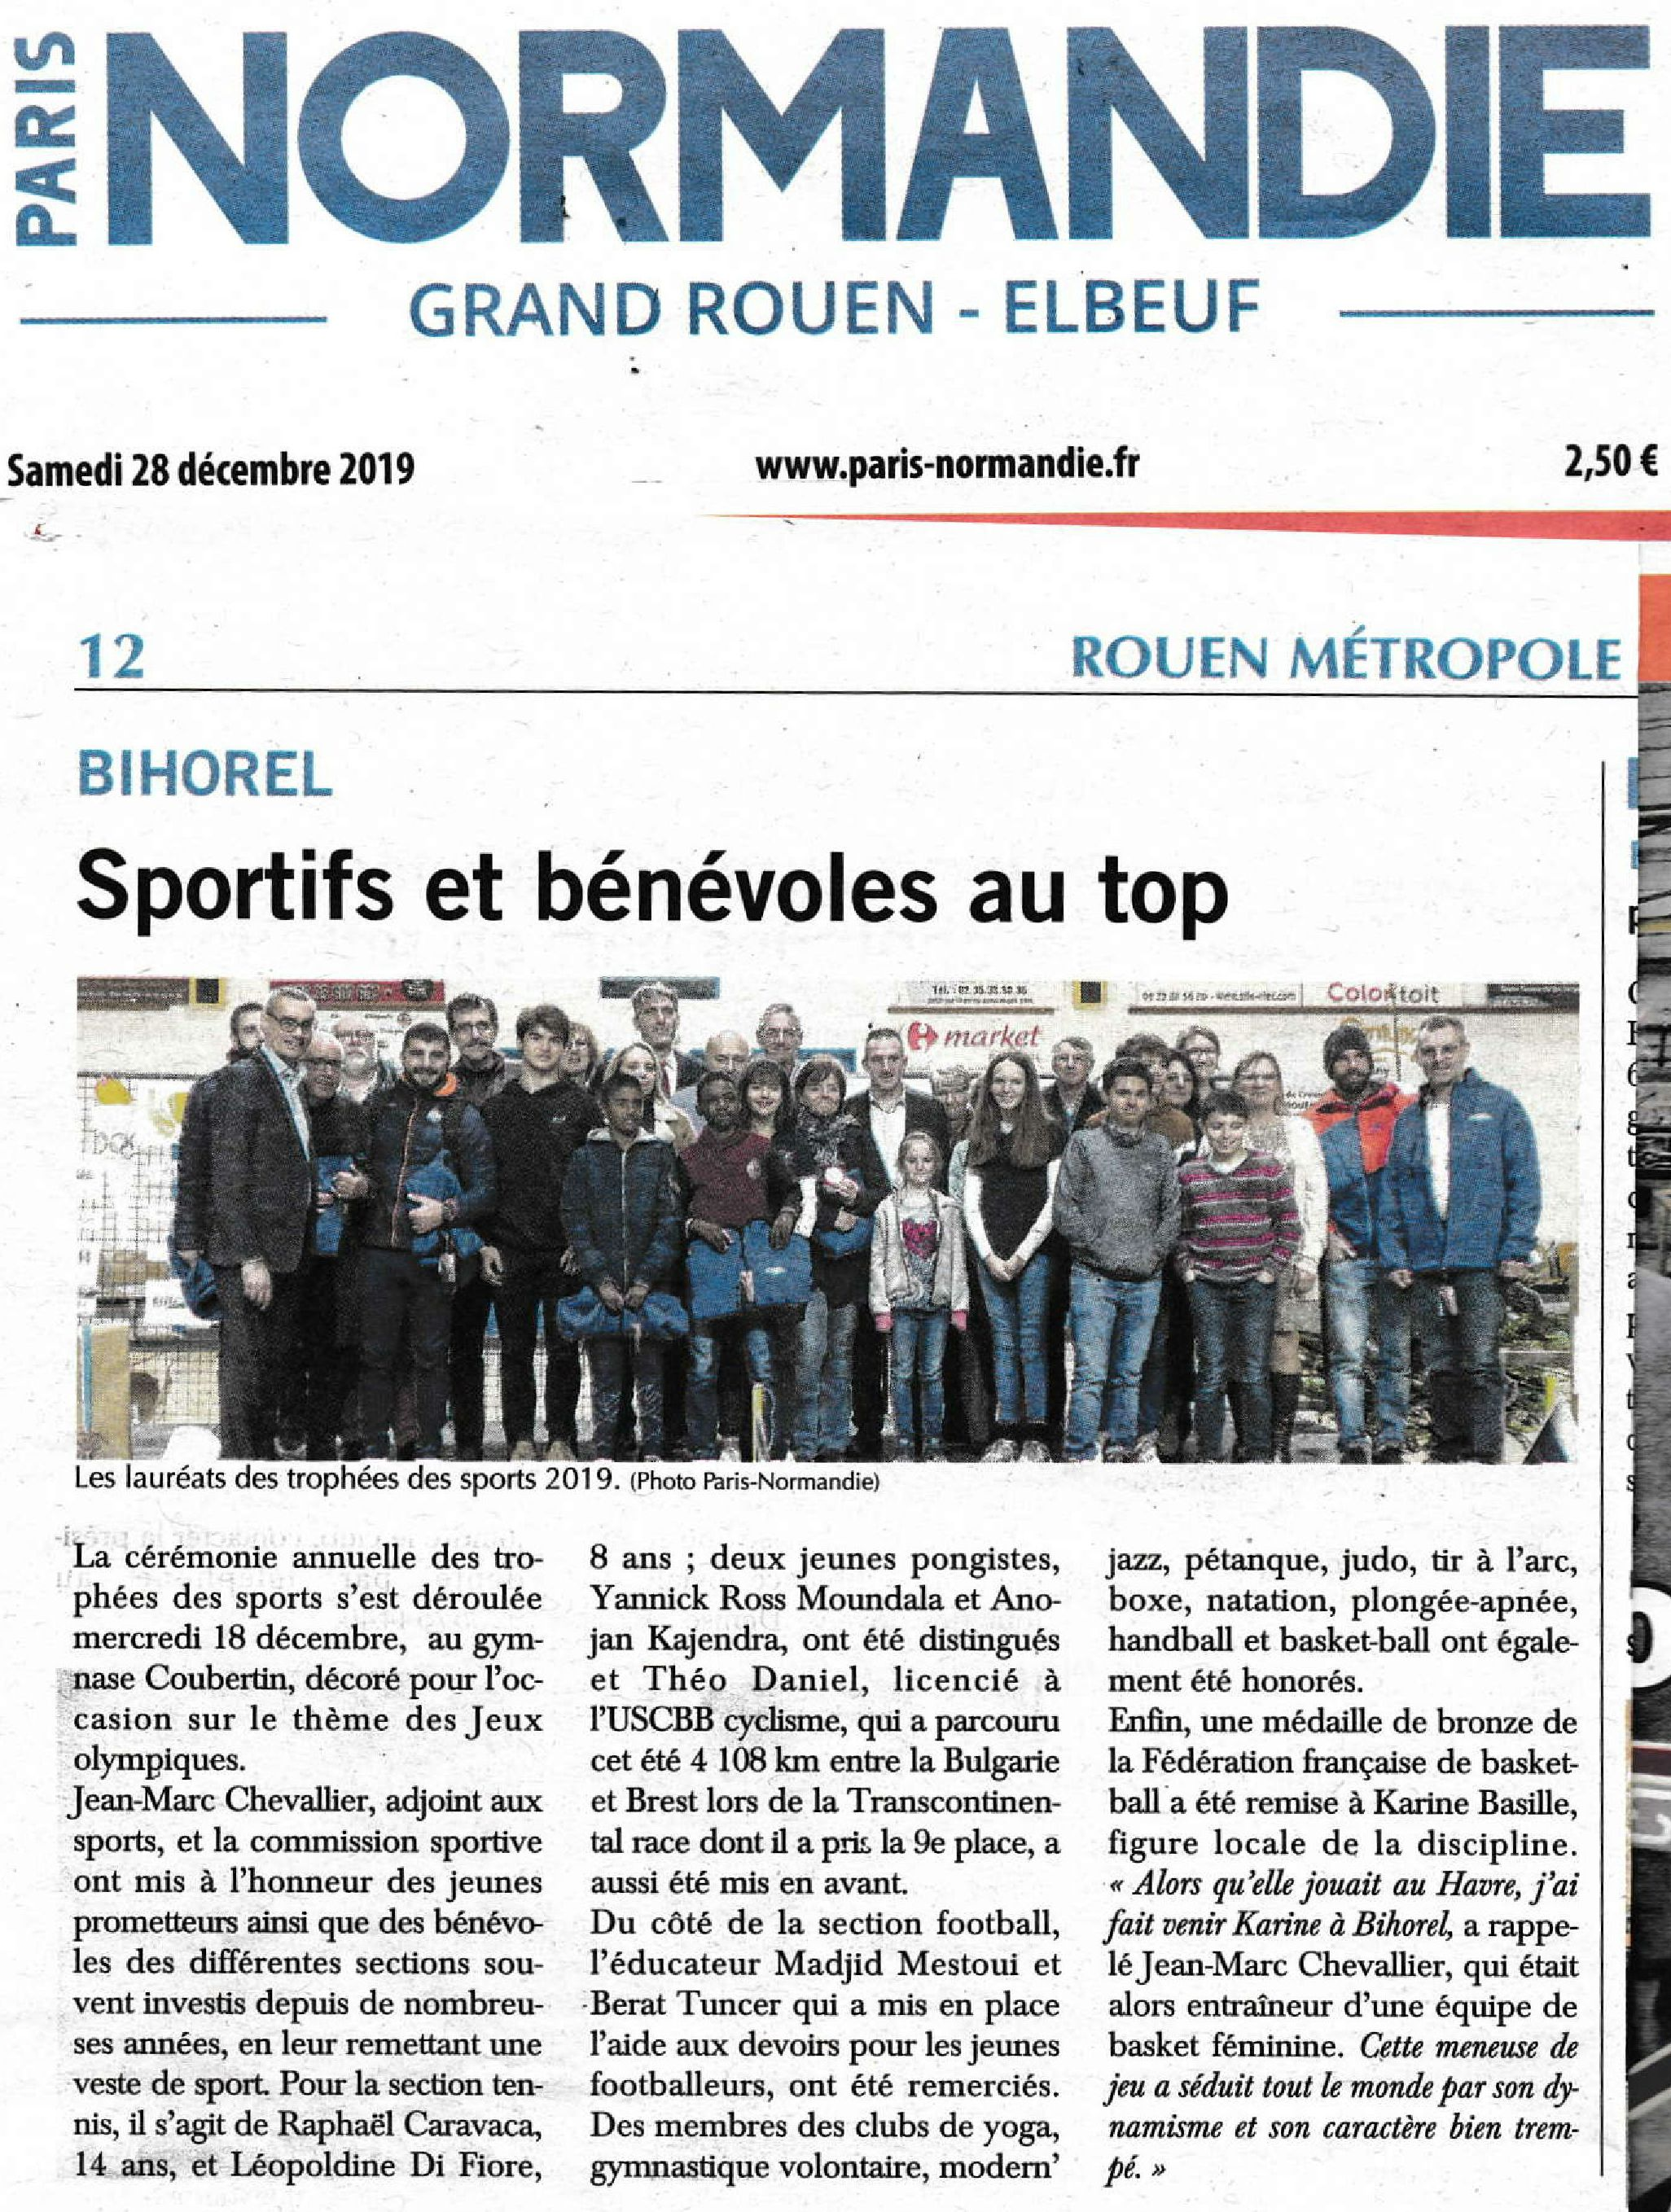 =_UTF-8_Q_19_12_18_Troph=C3=A9es_des_sports_Bihorel_le_18_12__; ___filename_1=___19-page-001